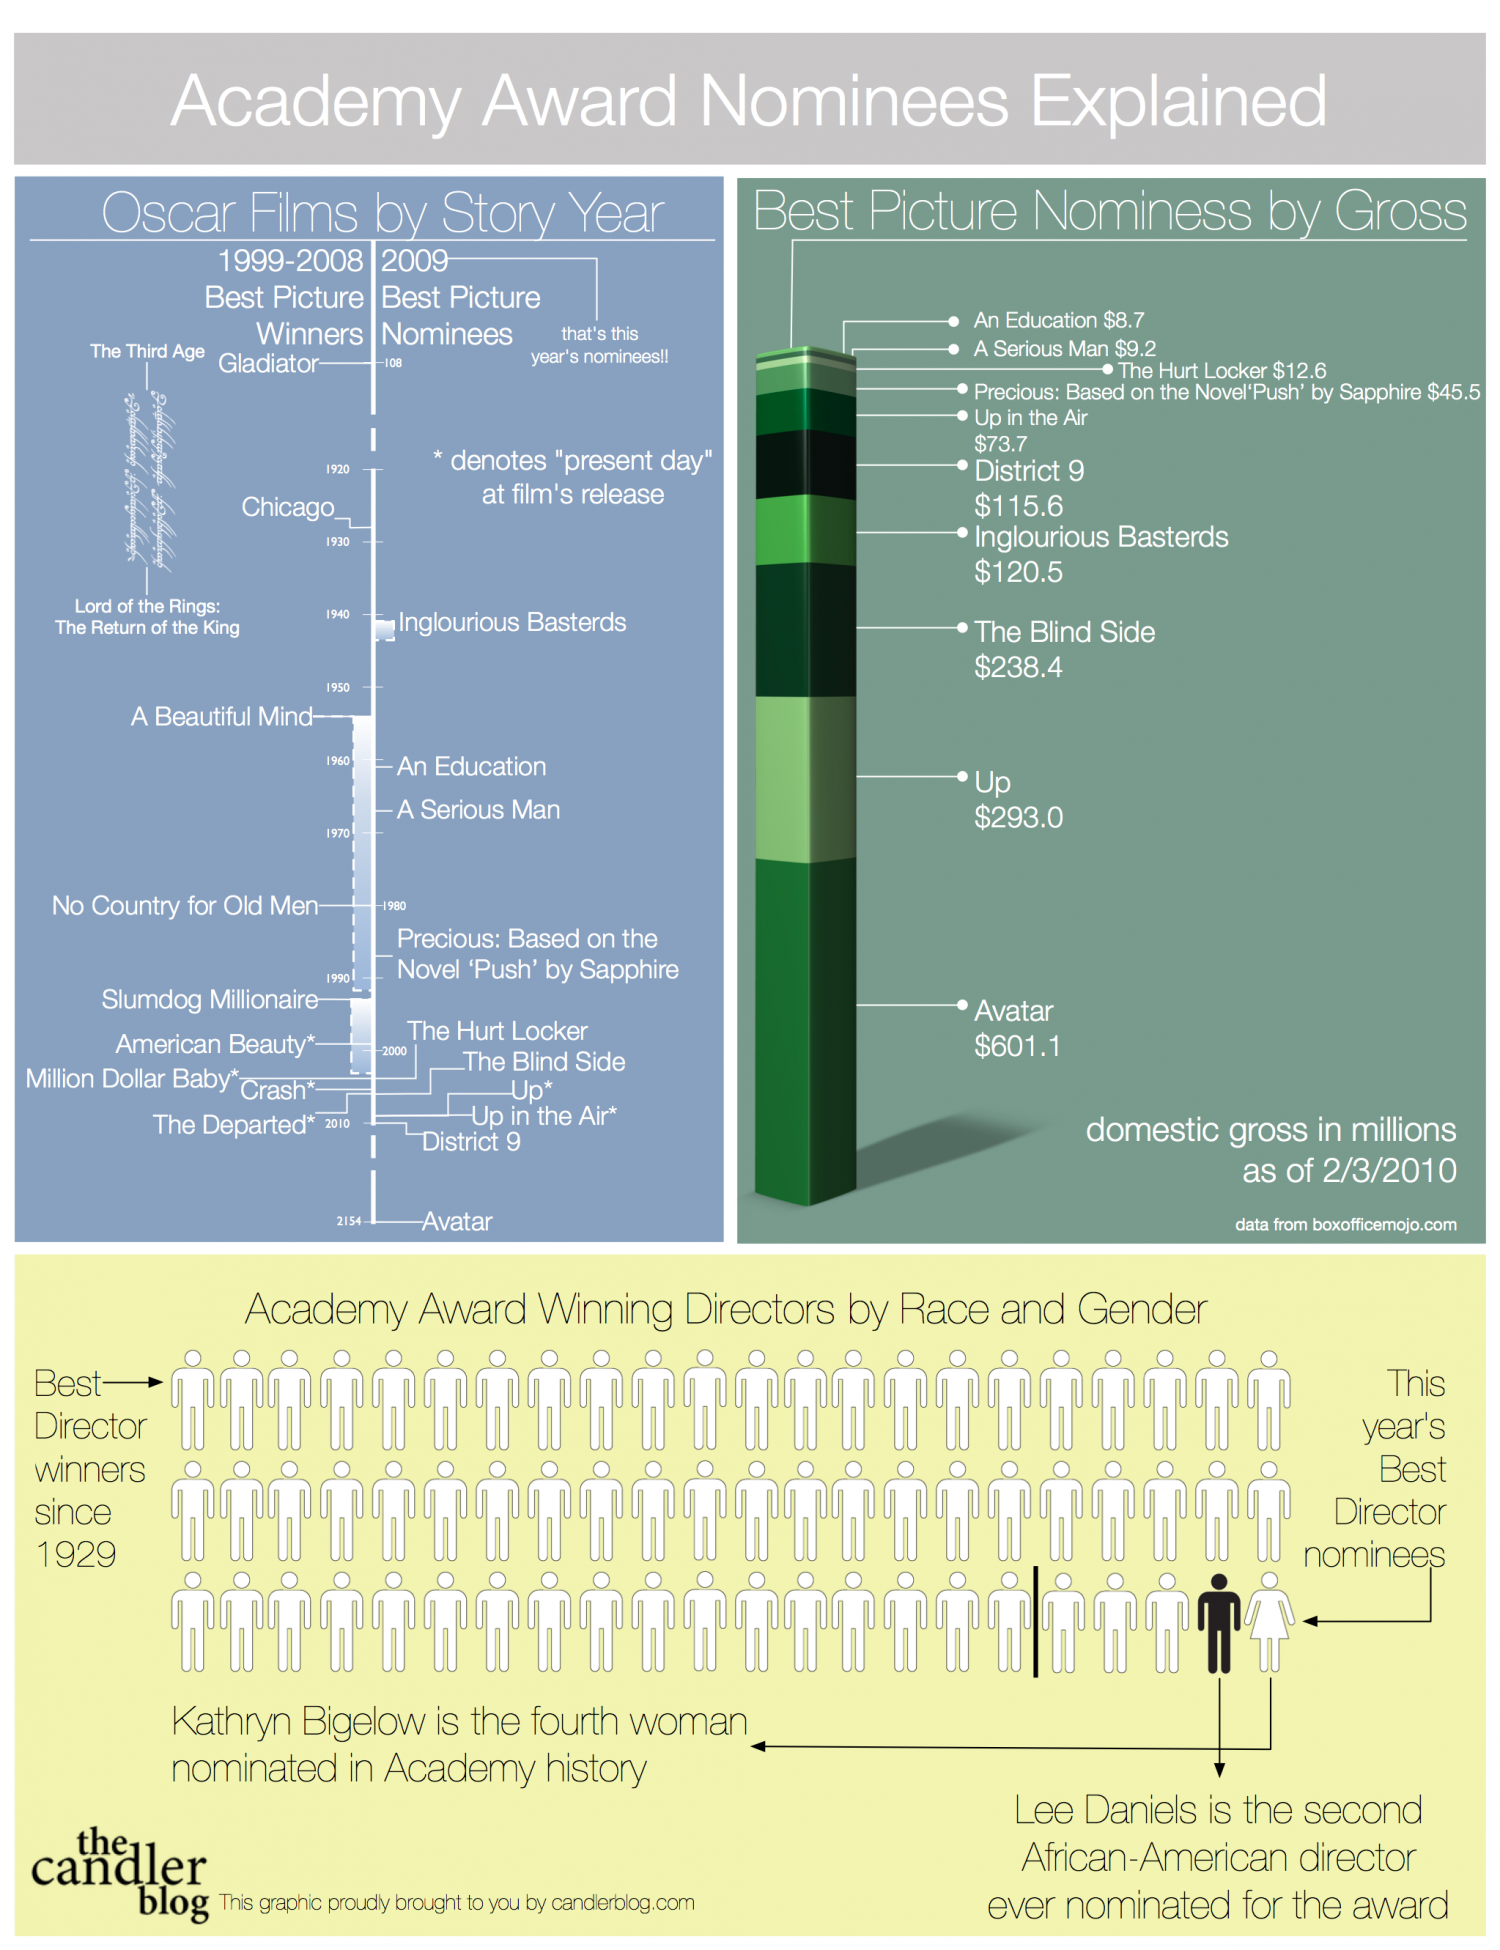 Academy Award Nominees Explained  Infographic